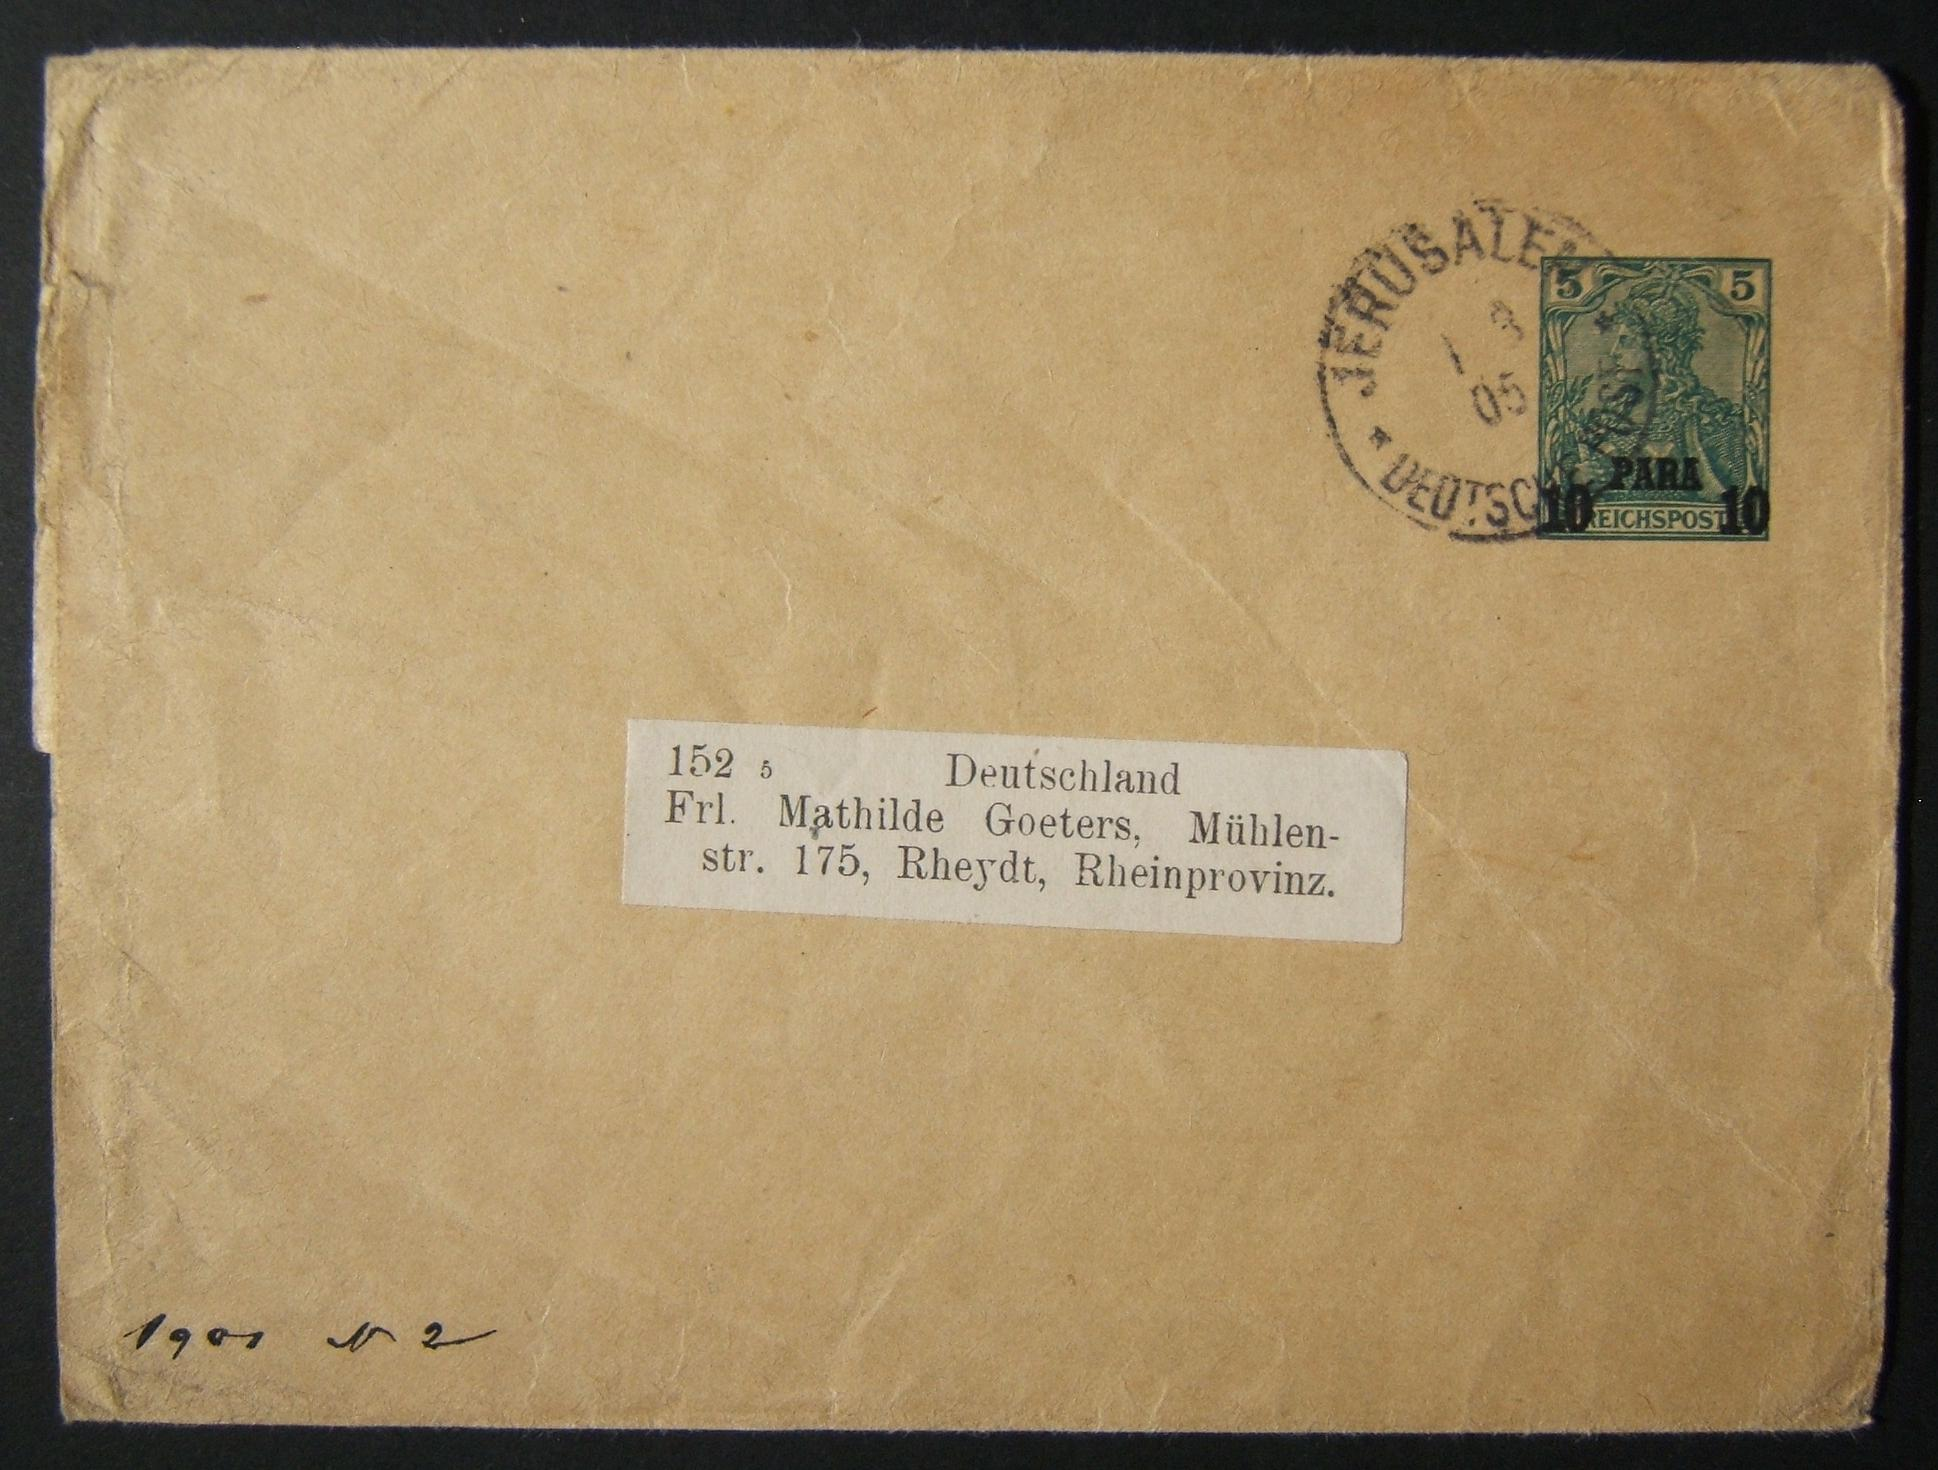 3/1905 Holyland German Post Levant prepaid wrapper from JERUSALEM to RHEYDT